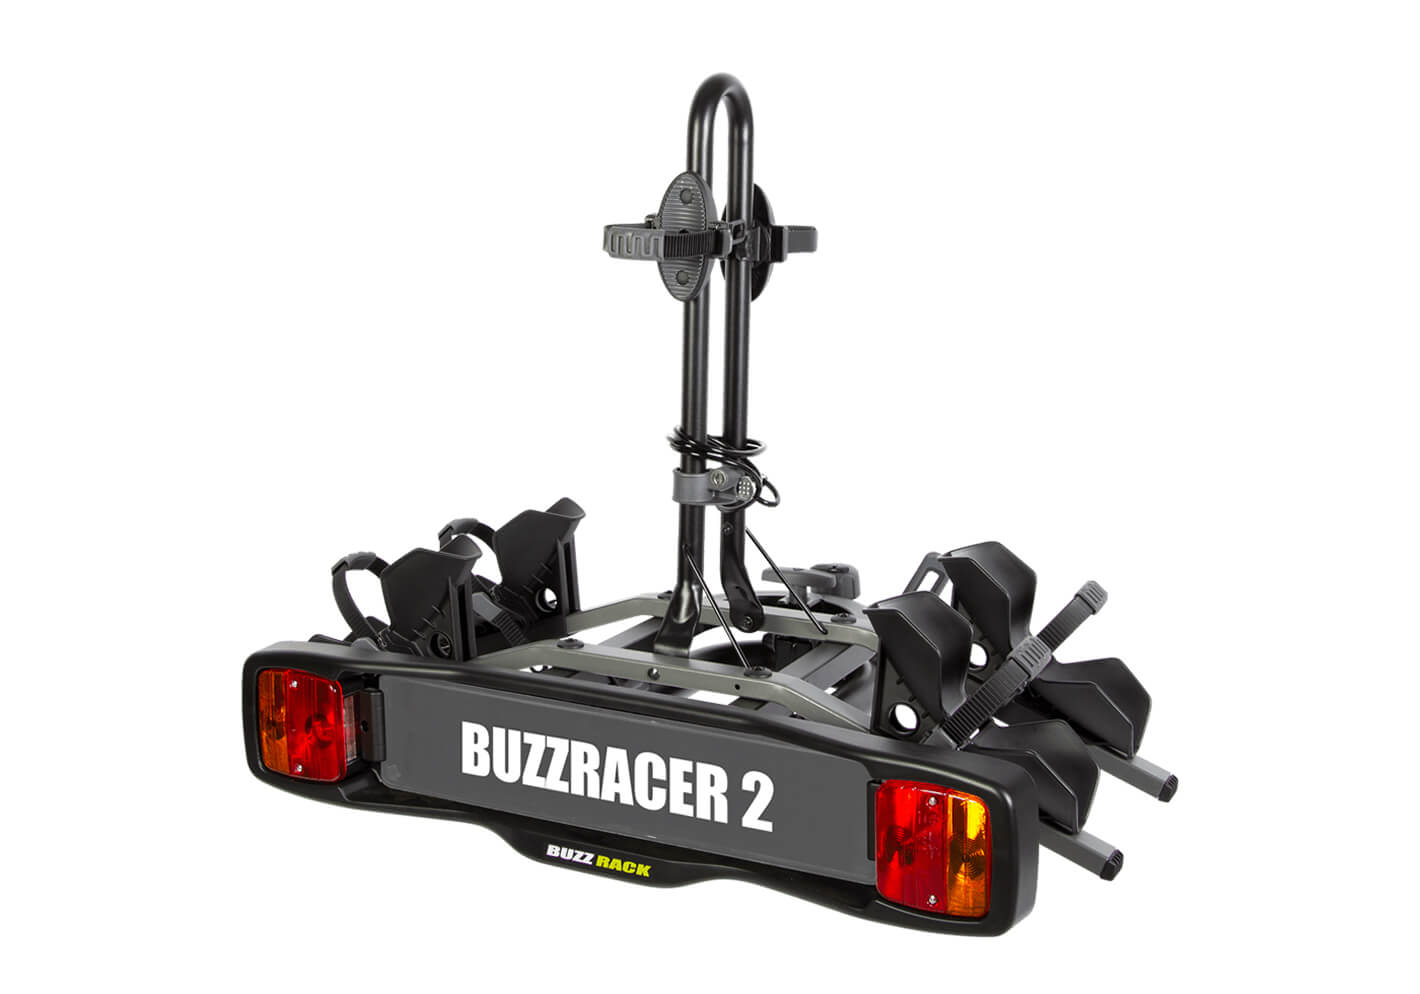 :BUZZ RACK BuzzRacer 2 bike wheel support rack no. BRP332